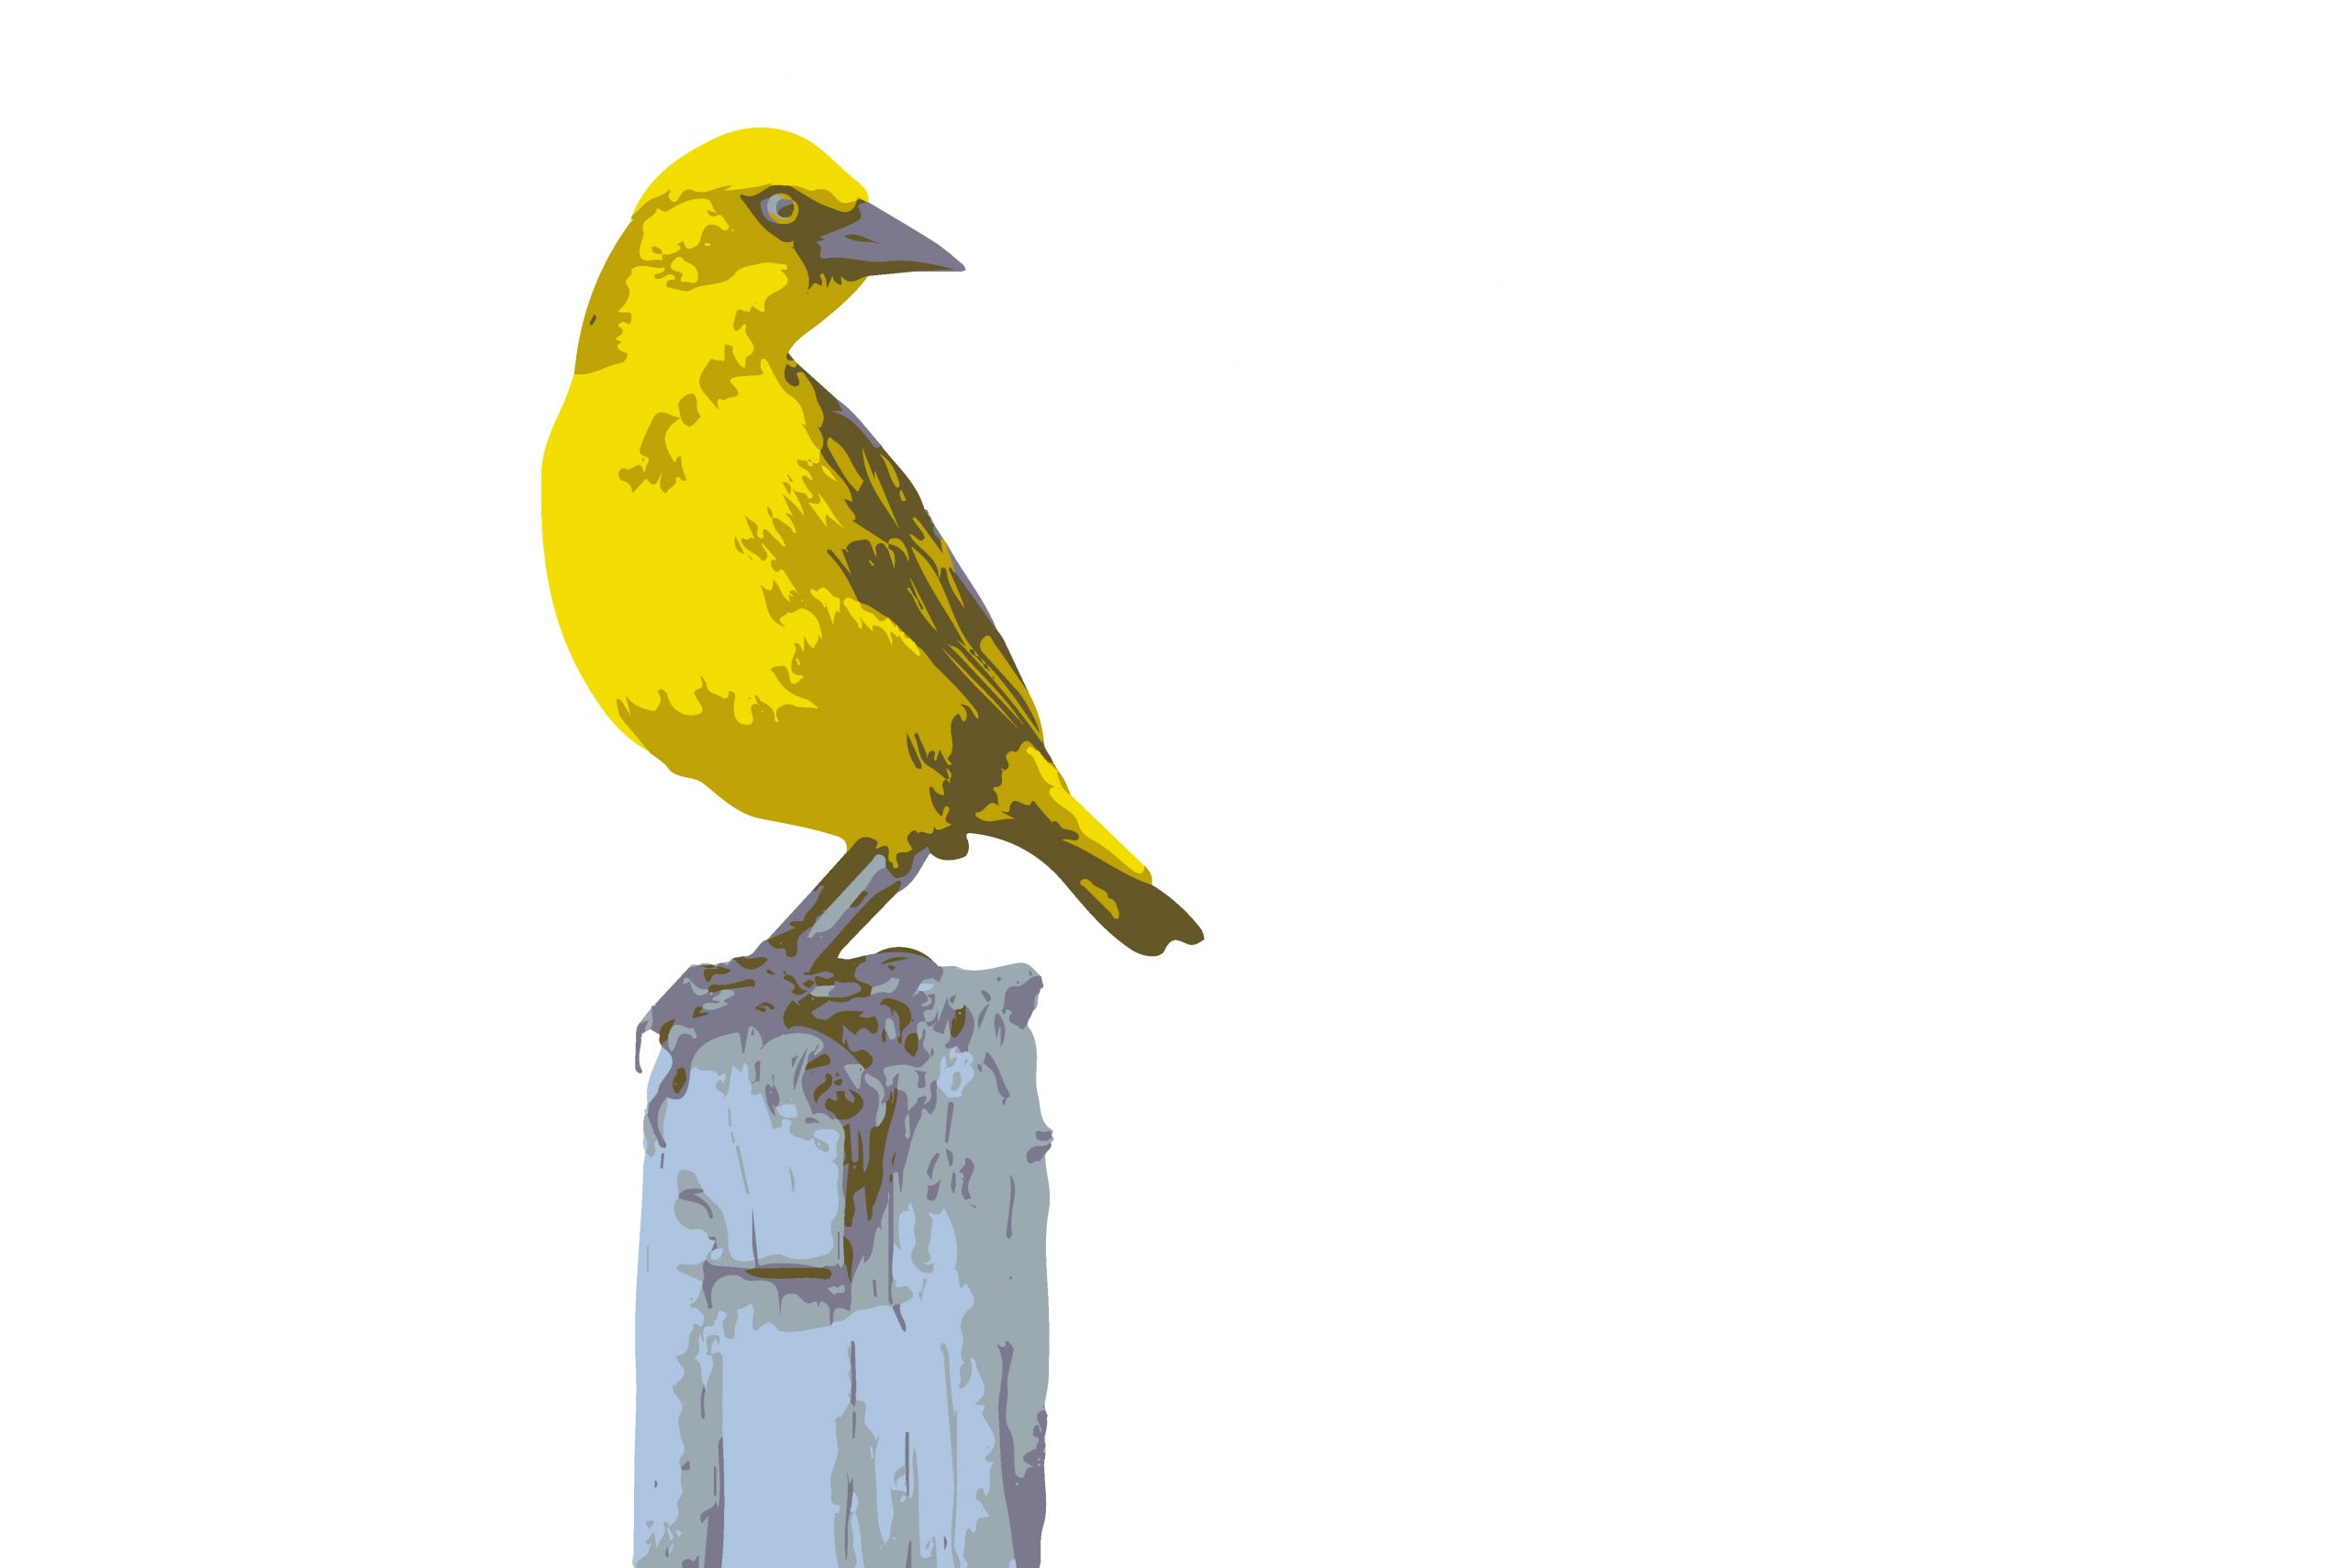 ILLUSTRATION of a bird sitting on the tree